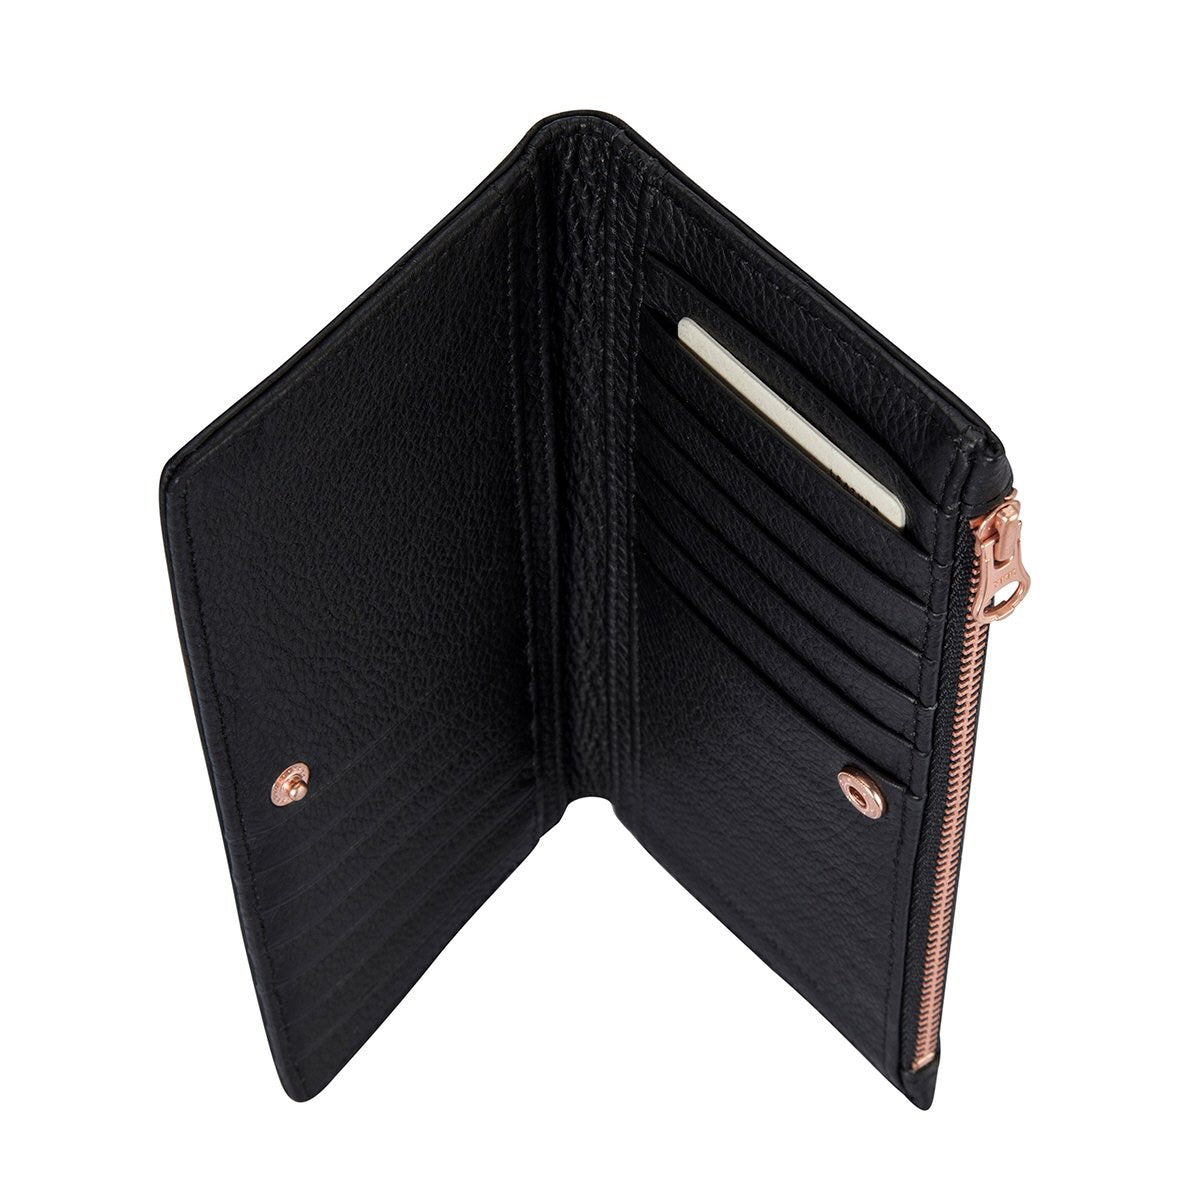 Status Anxiety - In The Beginning Wallet in Black